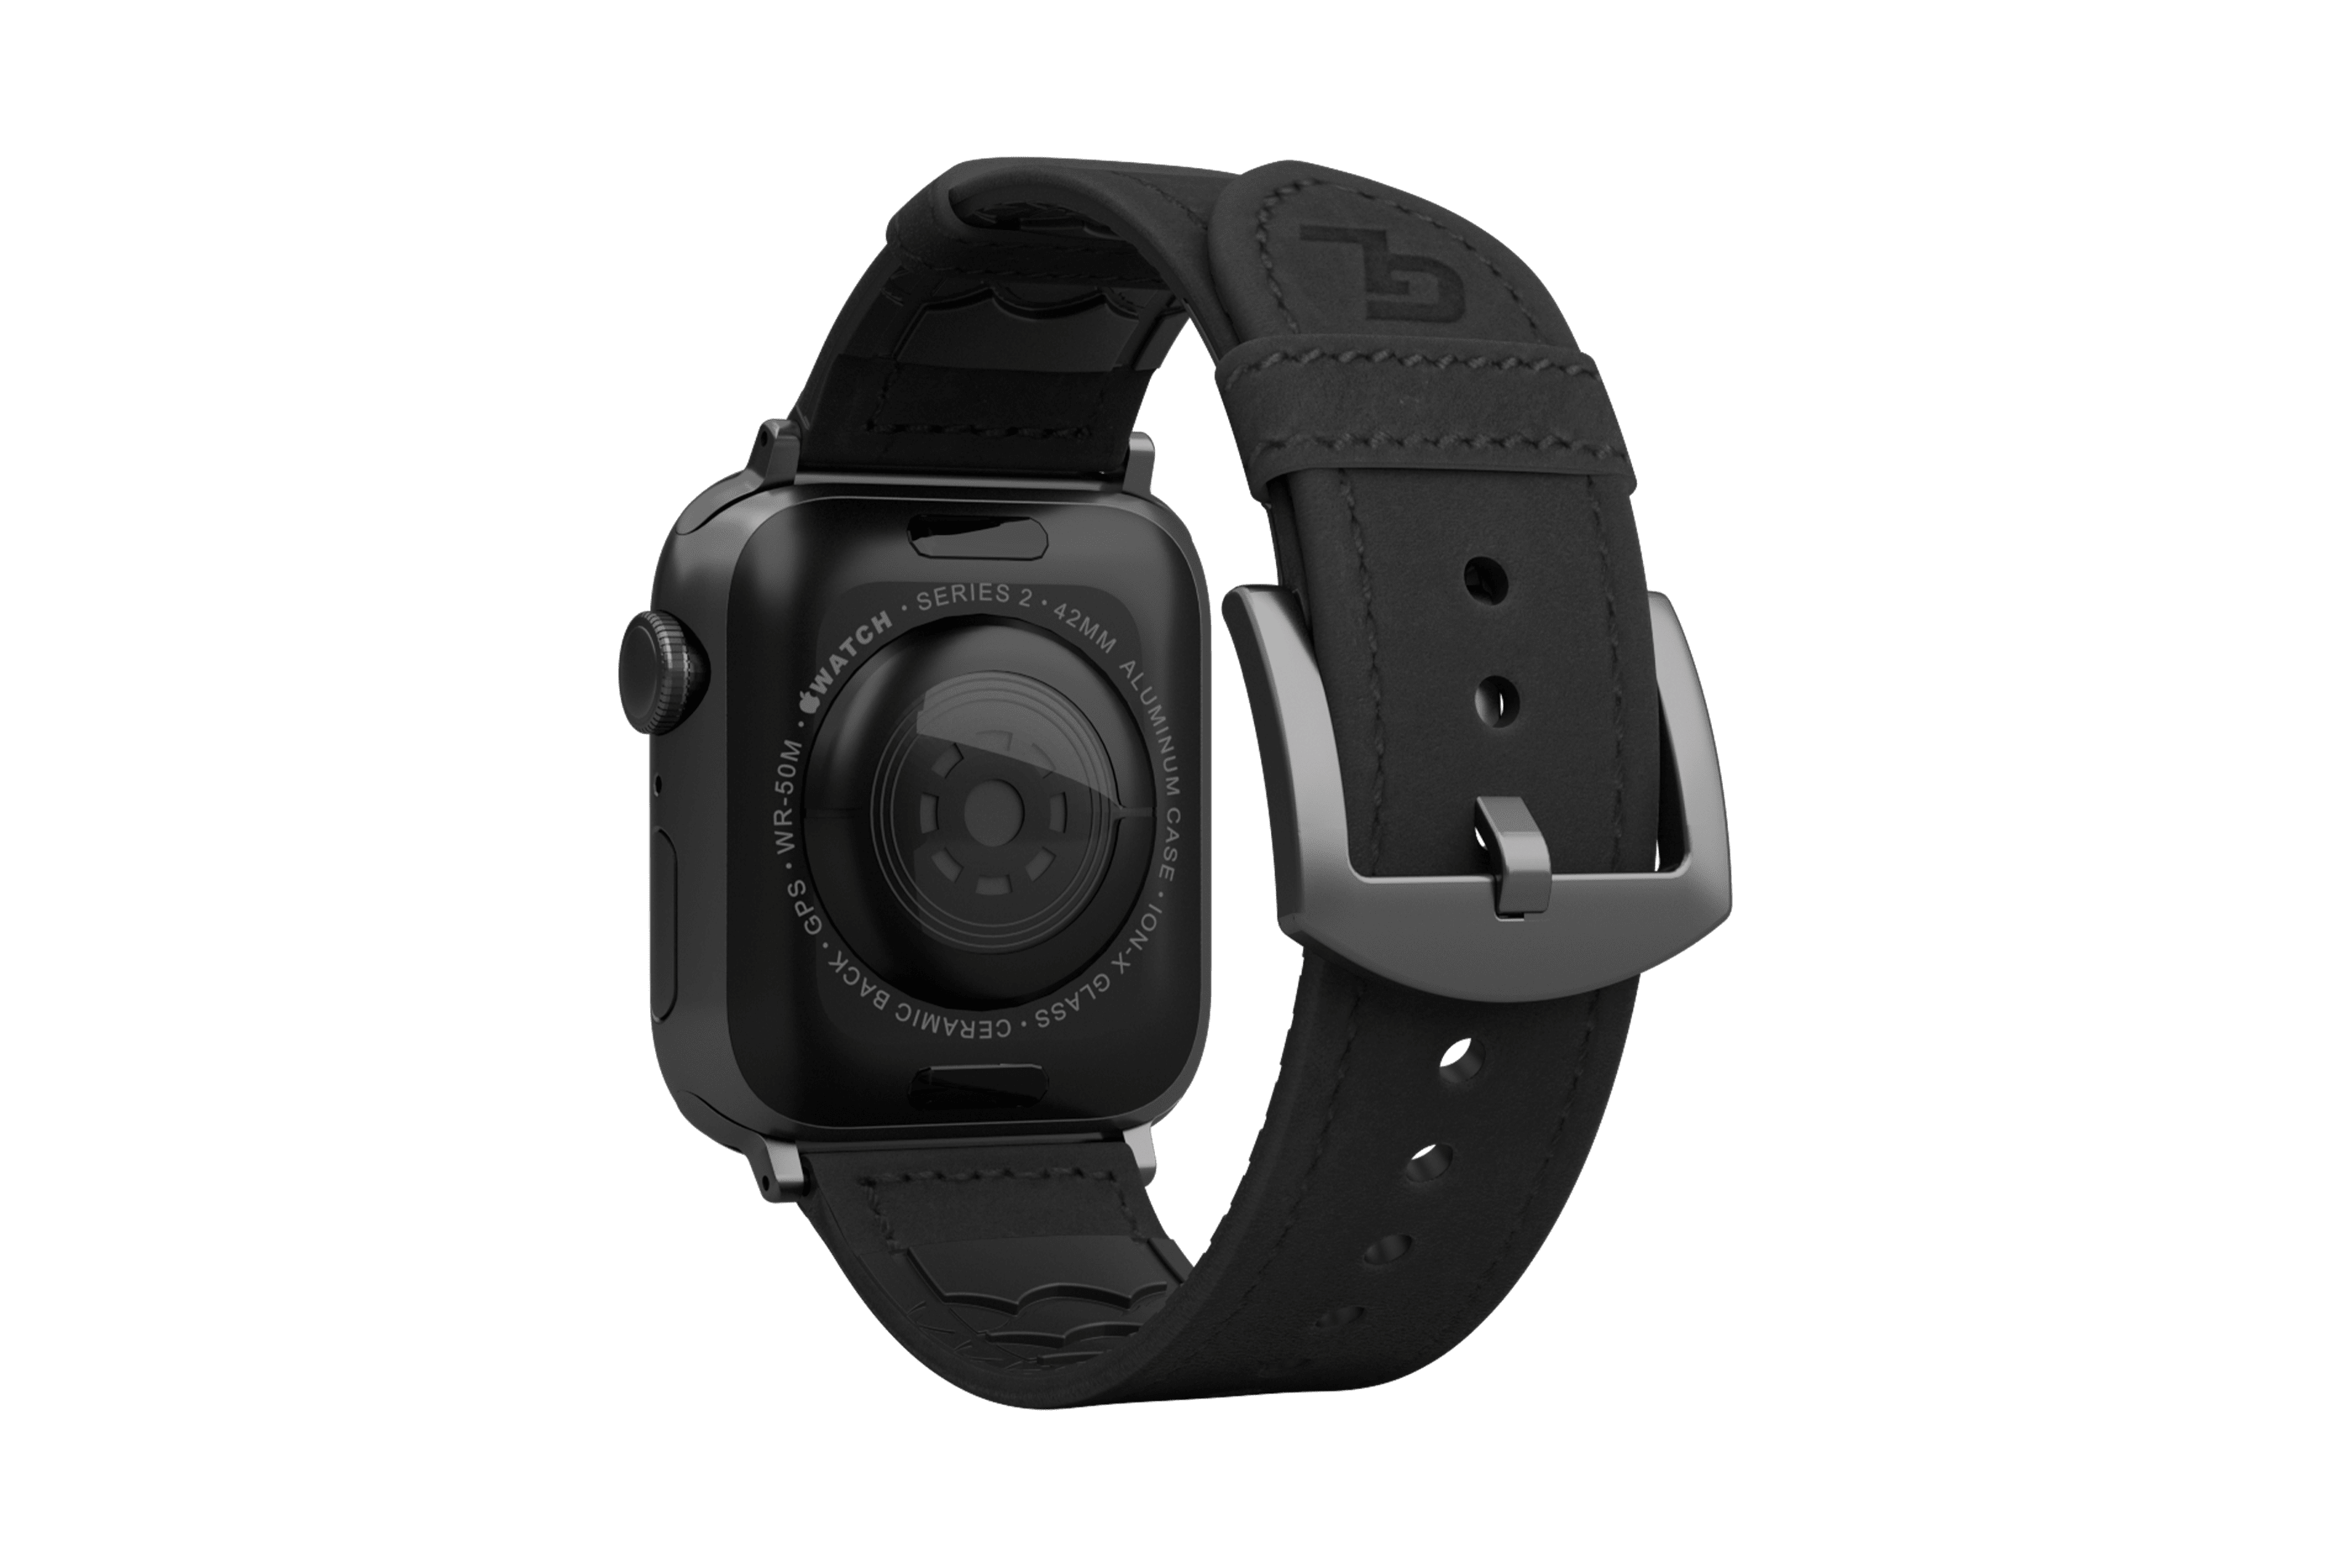 Vulcan Obsidian Black Leather apple watch band with gray hardware viewed from top down